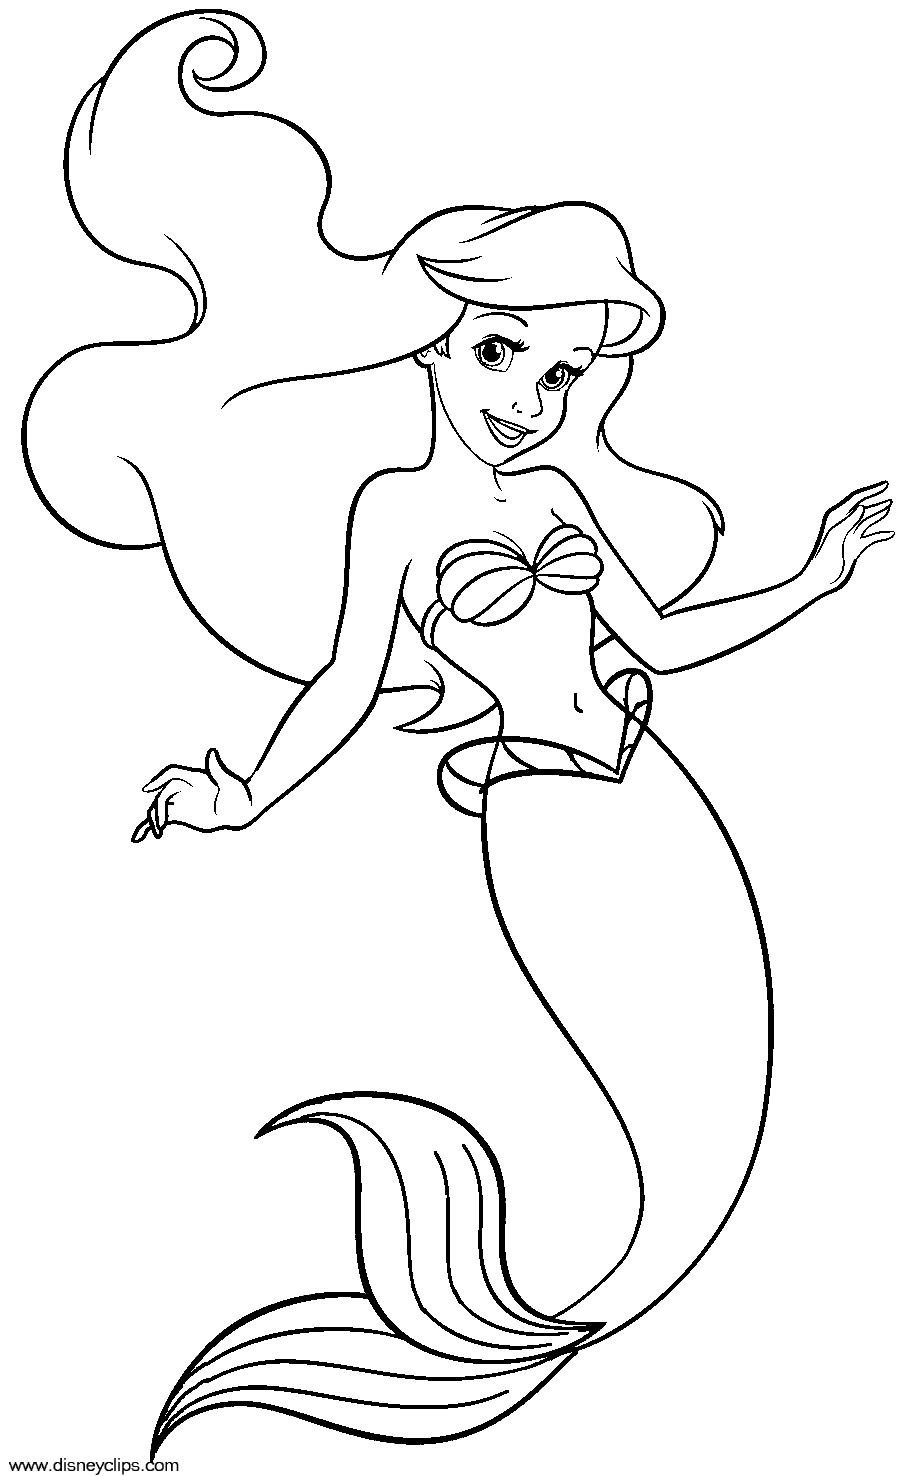 ariel coloring pages free - ariel coloring pages ariel color pages ariel s daughter melody coloring pages coloring coloring pages disney